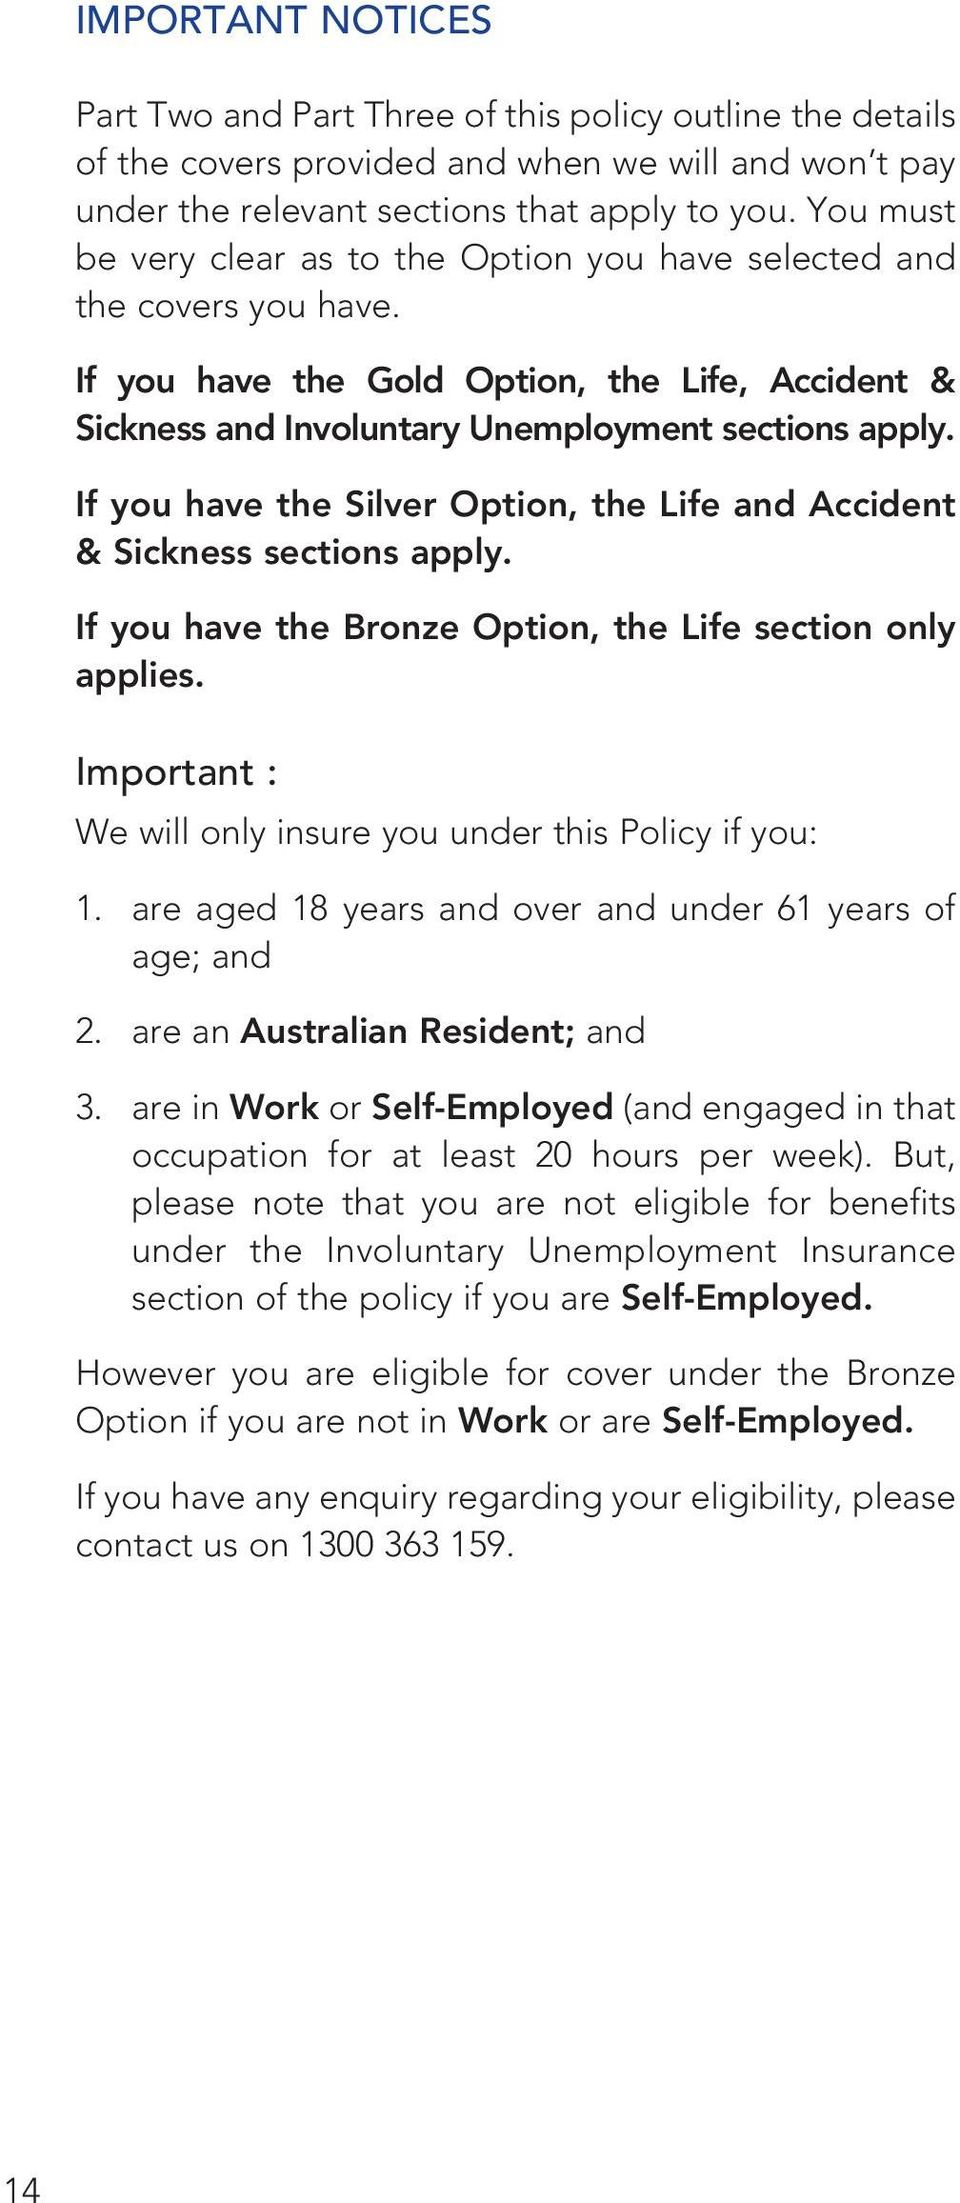 If you have the Silver Option, the Life and Accident & Sickness sections apply. If you have the Bronze Option, the Life section only applies.